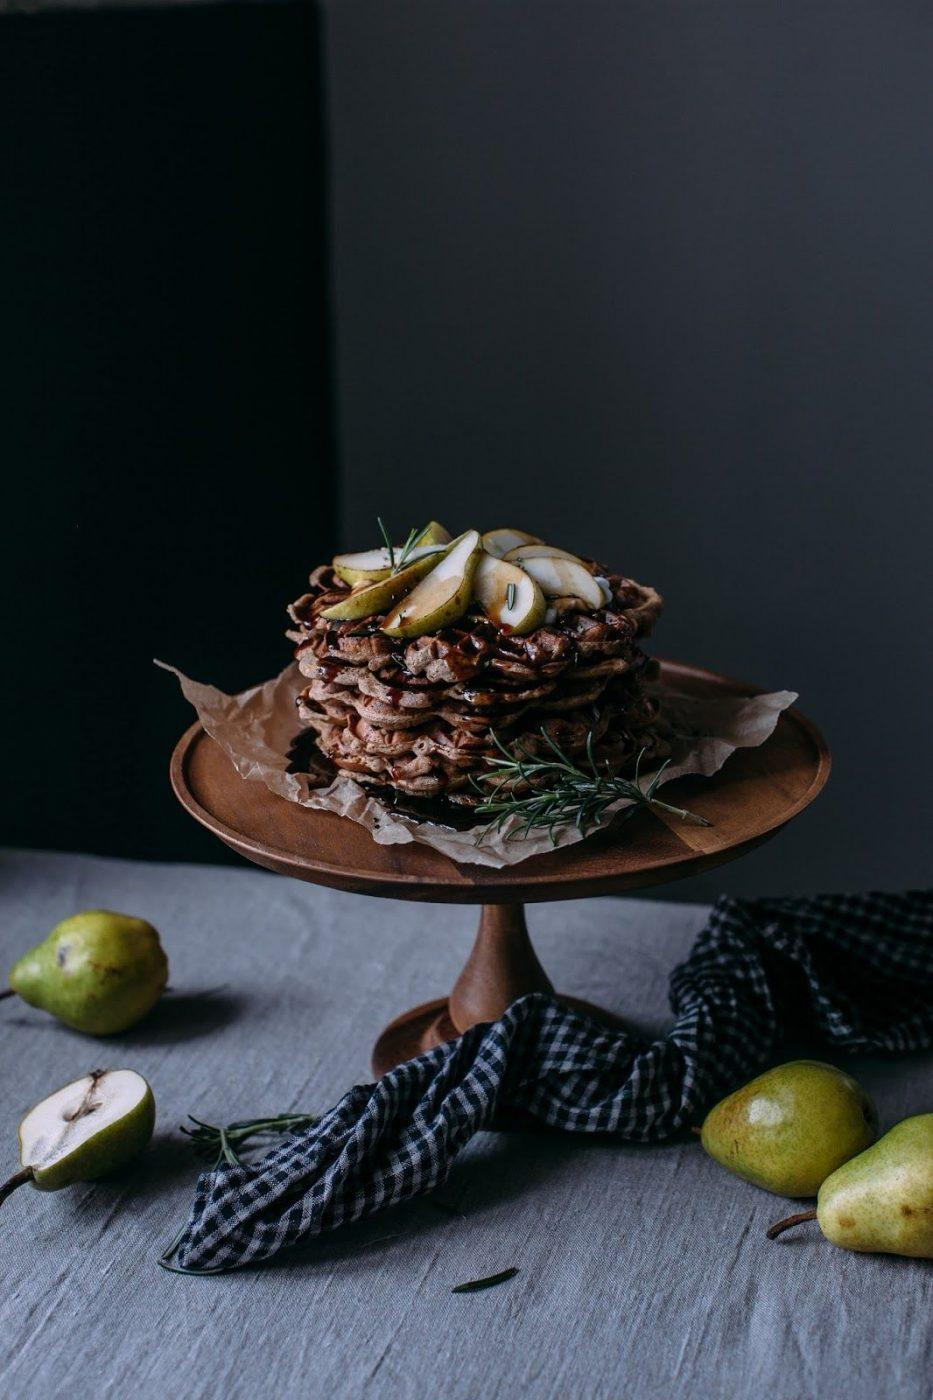 Image for Gluten-free Apple-Cinnamon Waffles with Pears and a Tea infused Rosmary – Coconut Sugar Syrup